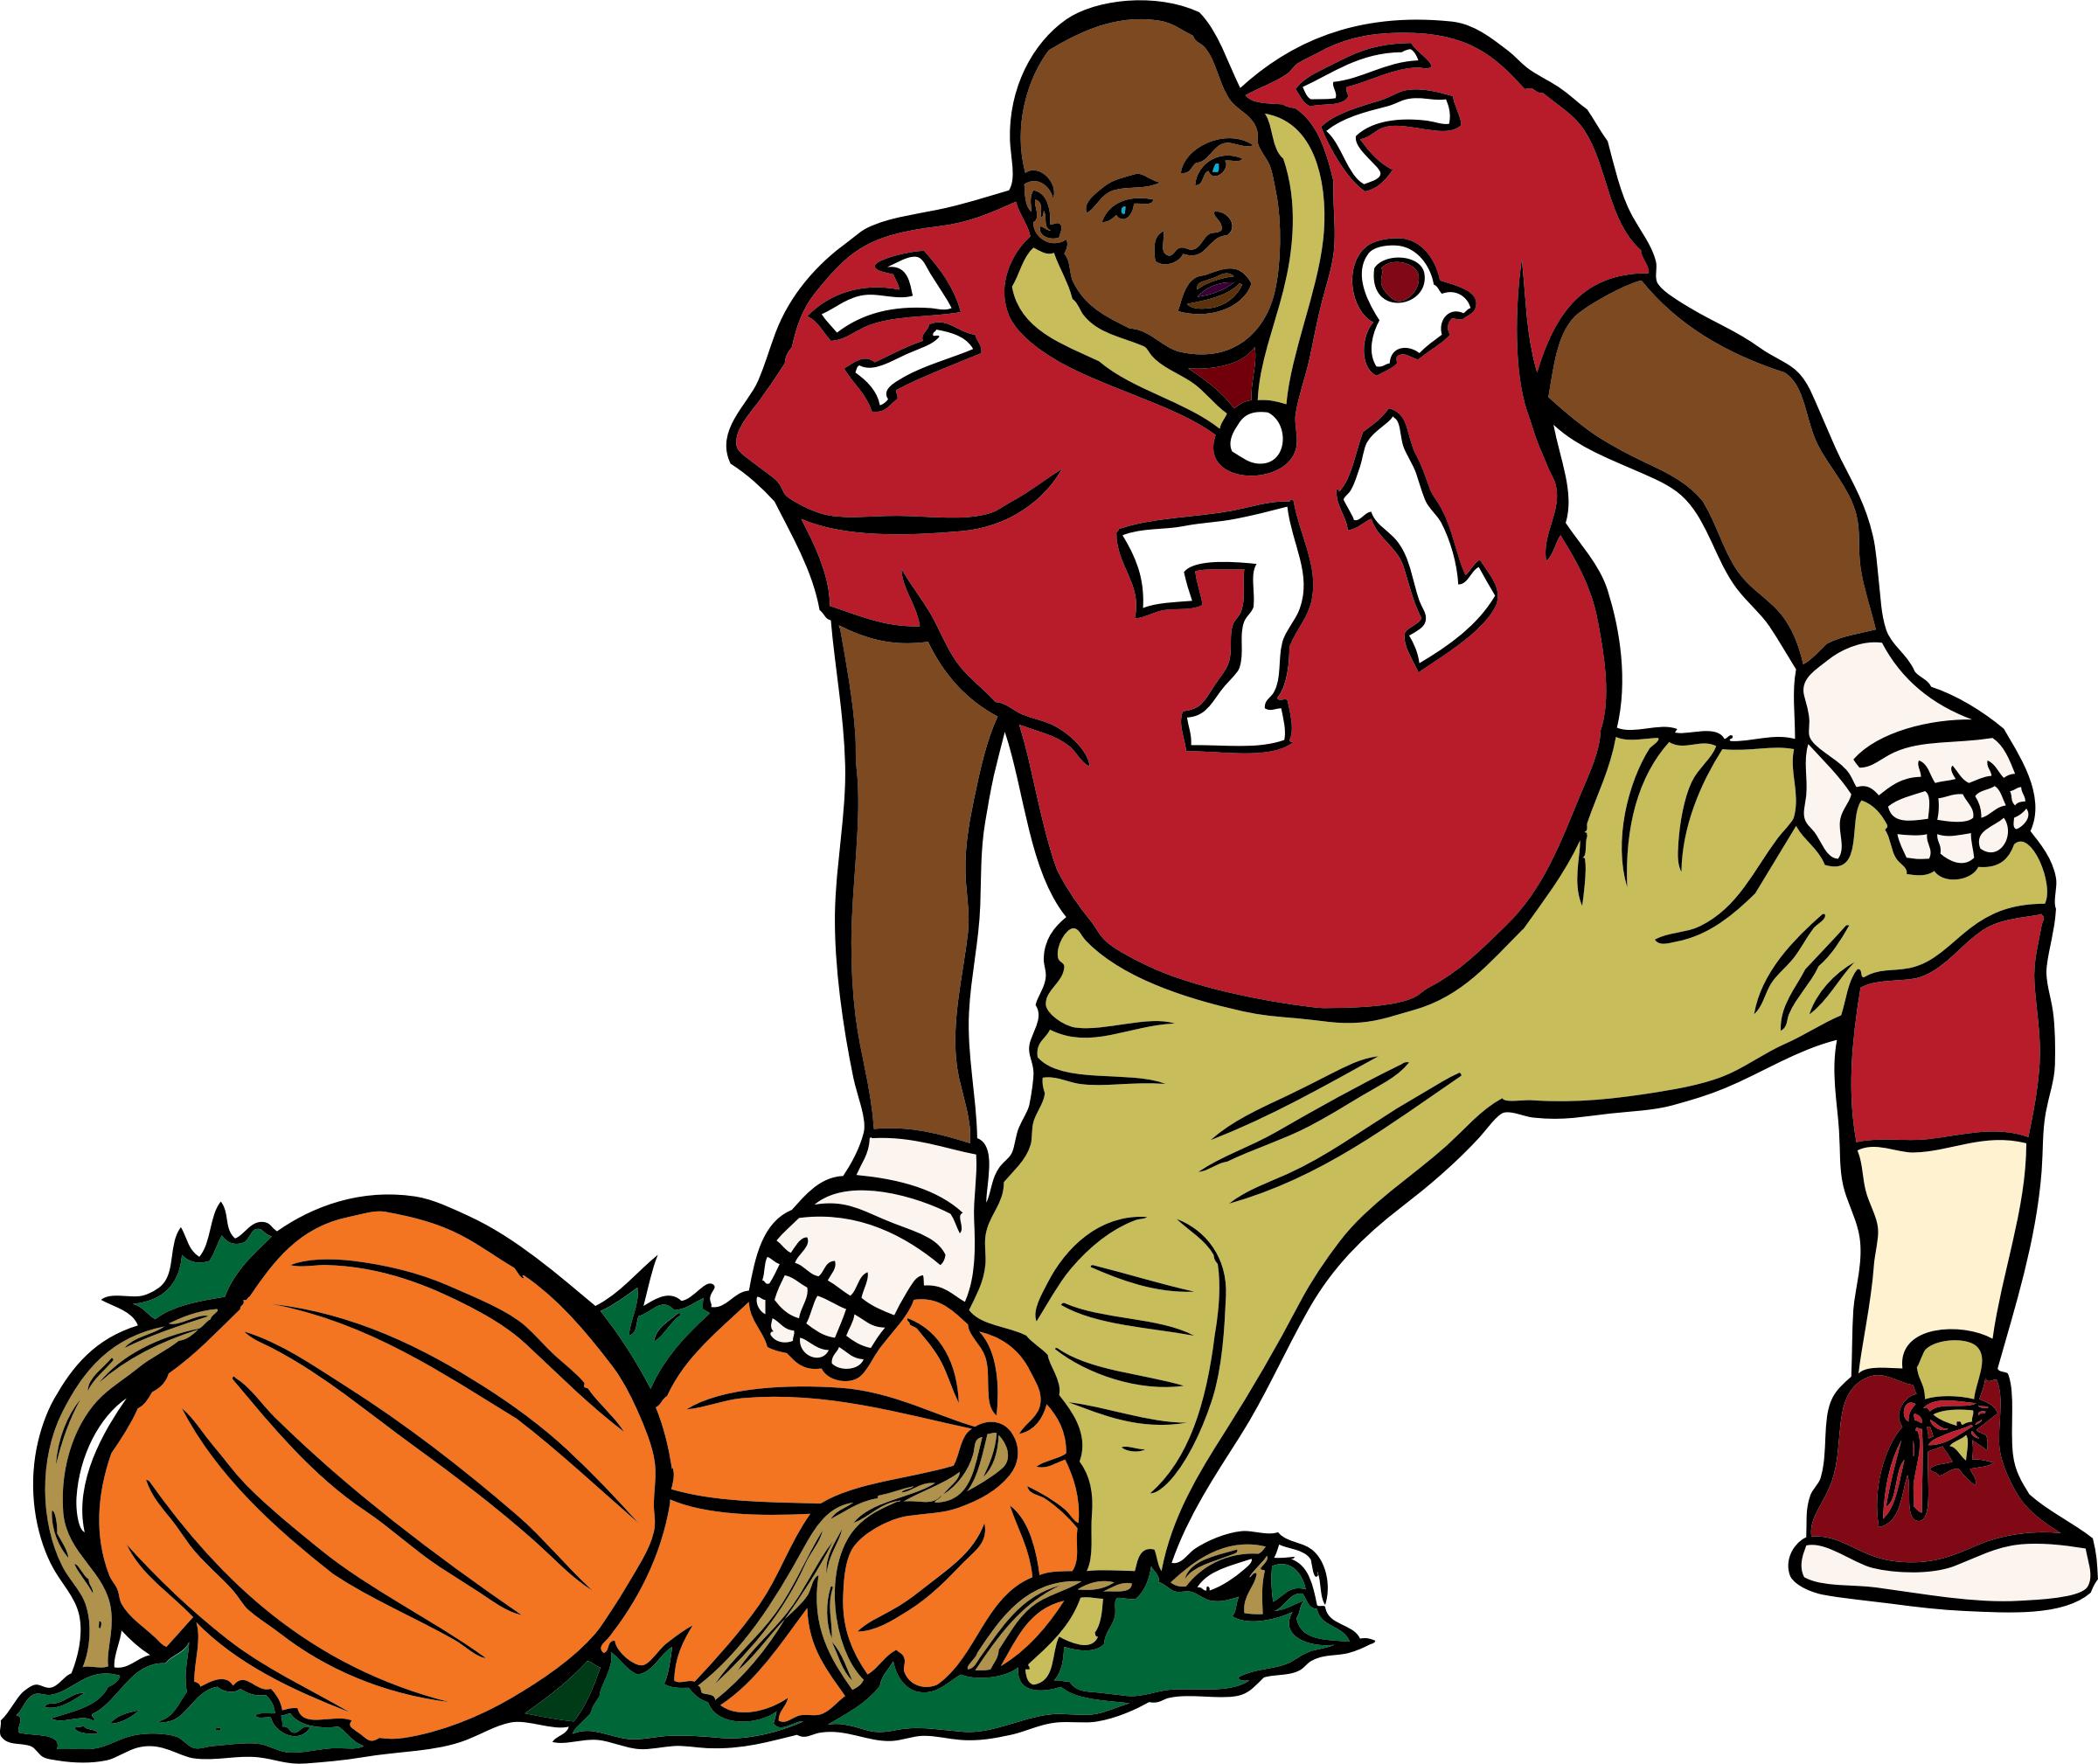 SF 49er with a pumpkin by PackardJennings